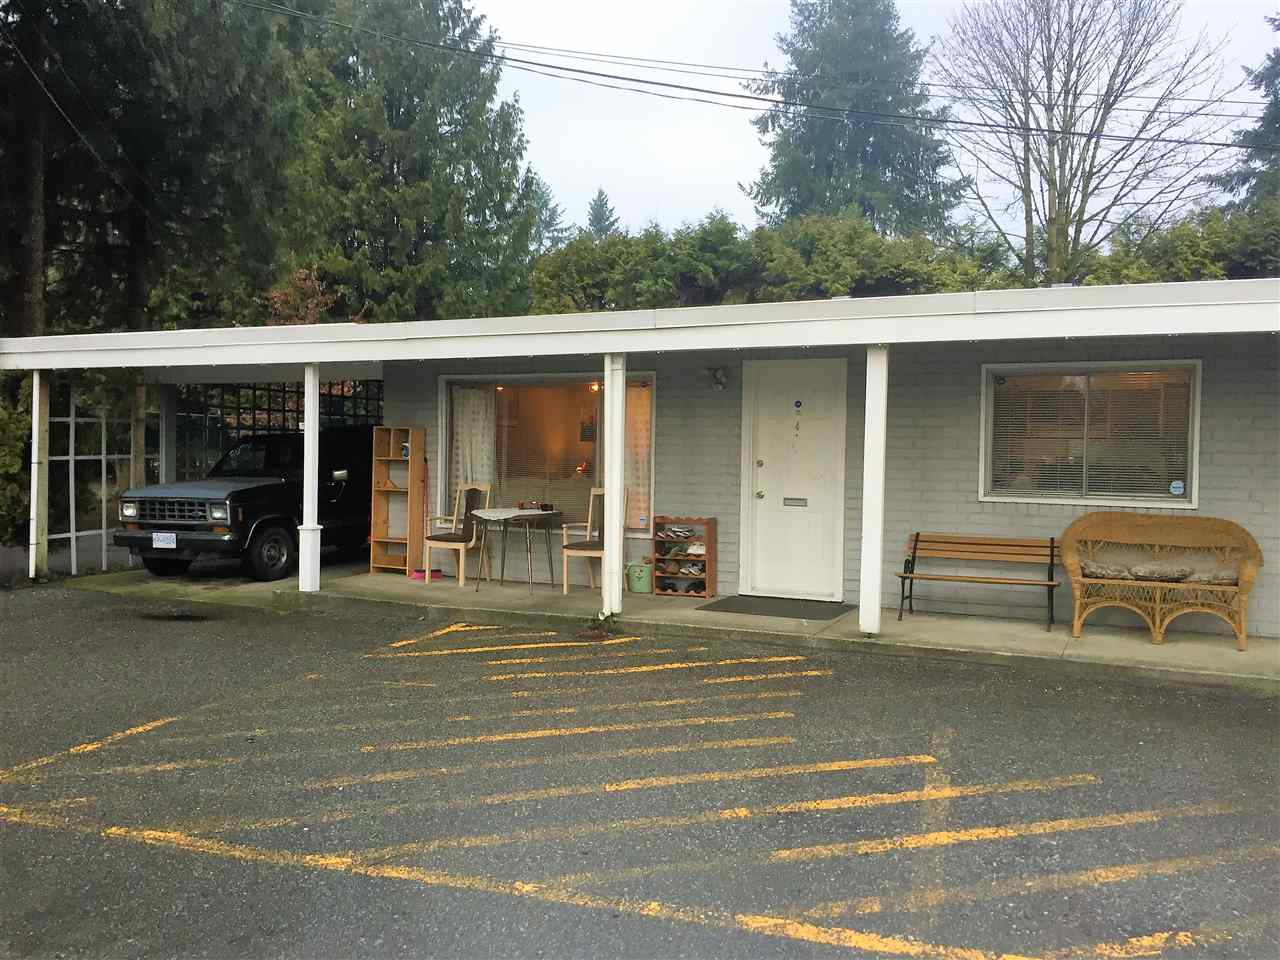 Talk about housing value! ONE LEVEL RANCHER living in Central Maple Ridge. TWO BEDROOMS and a den, END unit located away from Dewdney Trunk at the north end of Richmond Court. CARPORT parking, economical Strata Fee of $202.37 a month. No age restriction, Kindergarten to Grade 12 school within walking distance, Transit stops at the driveway. Two dogs or cats allowed but RENTALS ARE MAXED OUT. Appointments easily arranged by your Realtor.